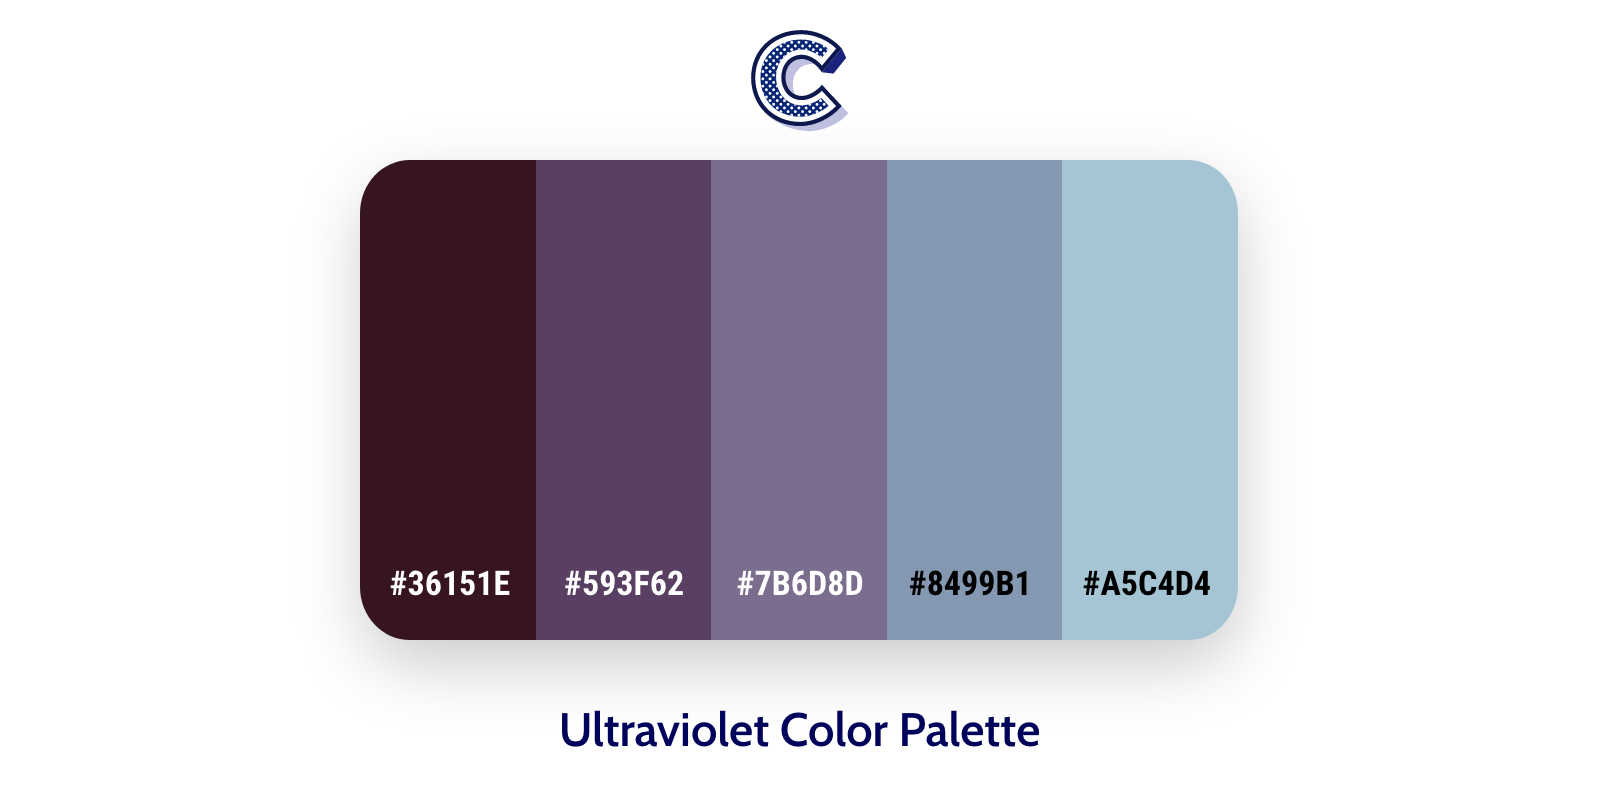 the featured image of ultraviolet color palette